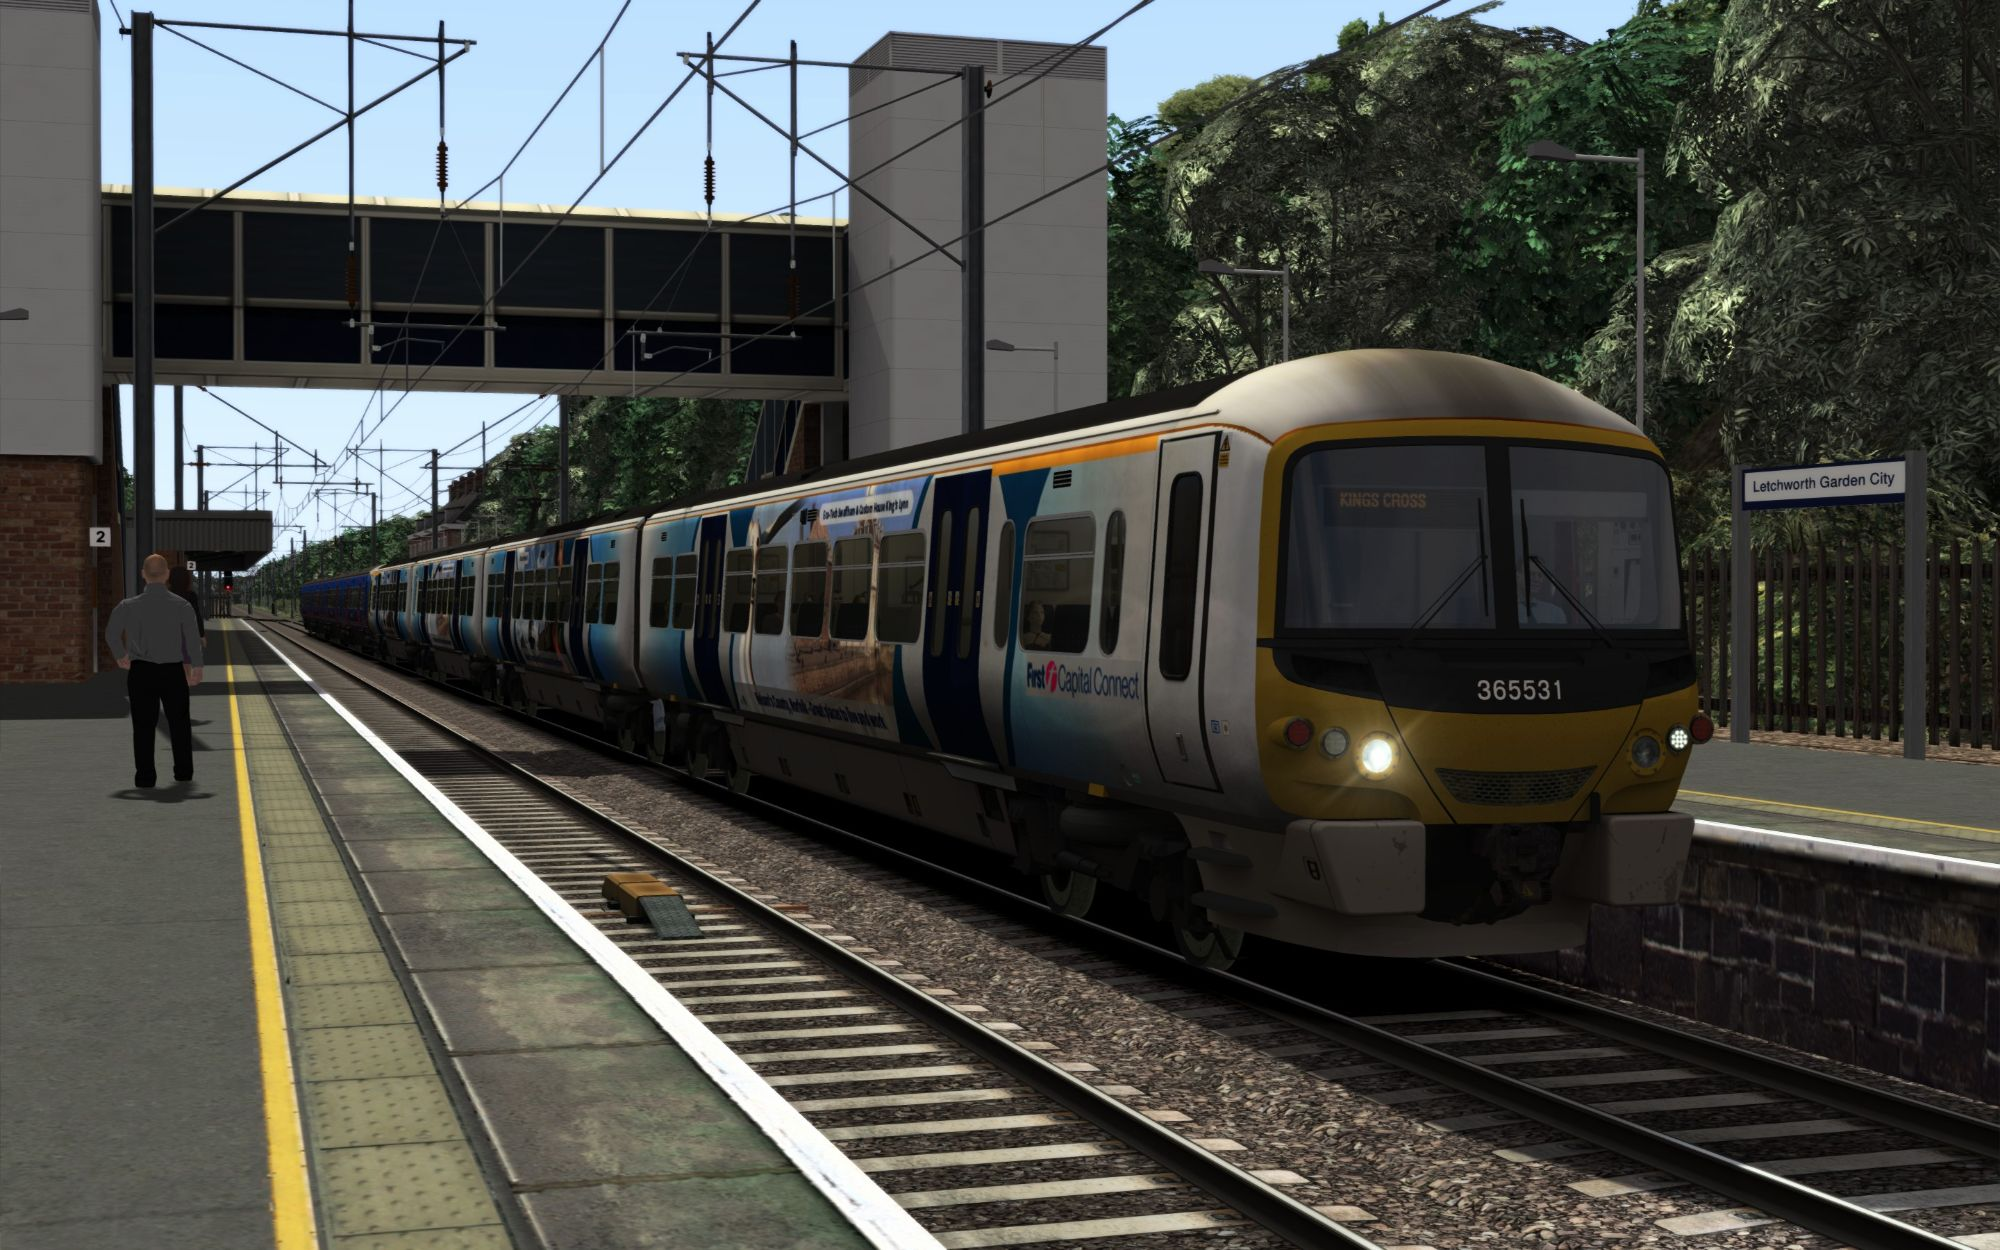 Image showing screenshot of the 1T55 - 0755 Kings Lynn to London Kings Cross scenario